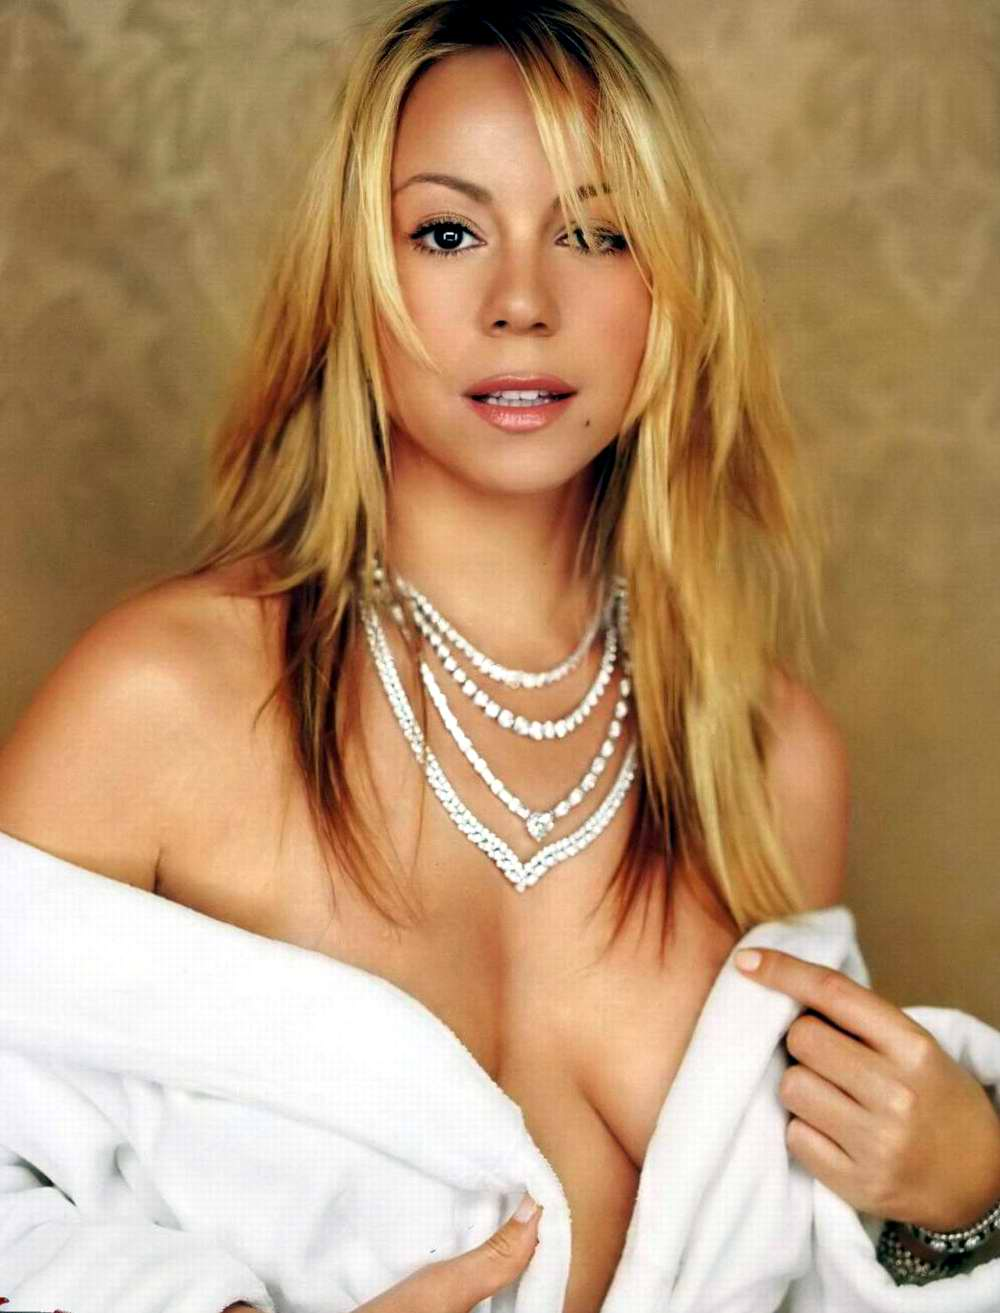 What is the Worst and Best Mariah Carey album?